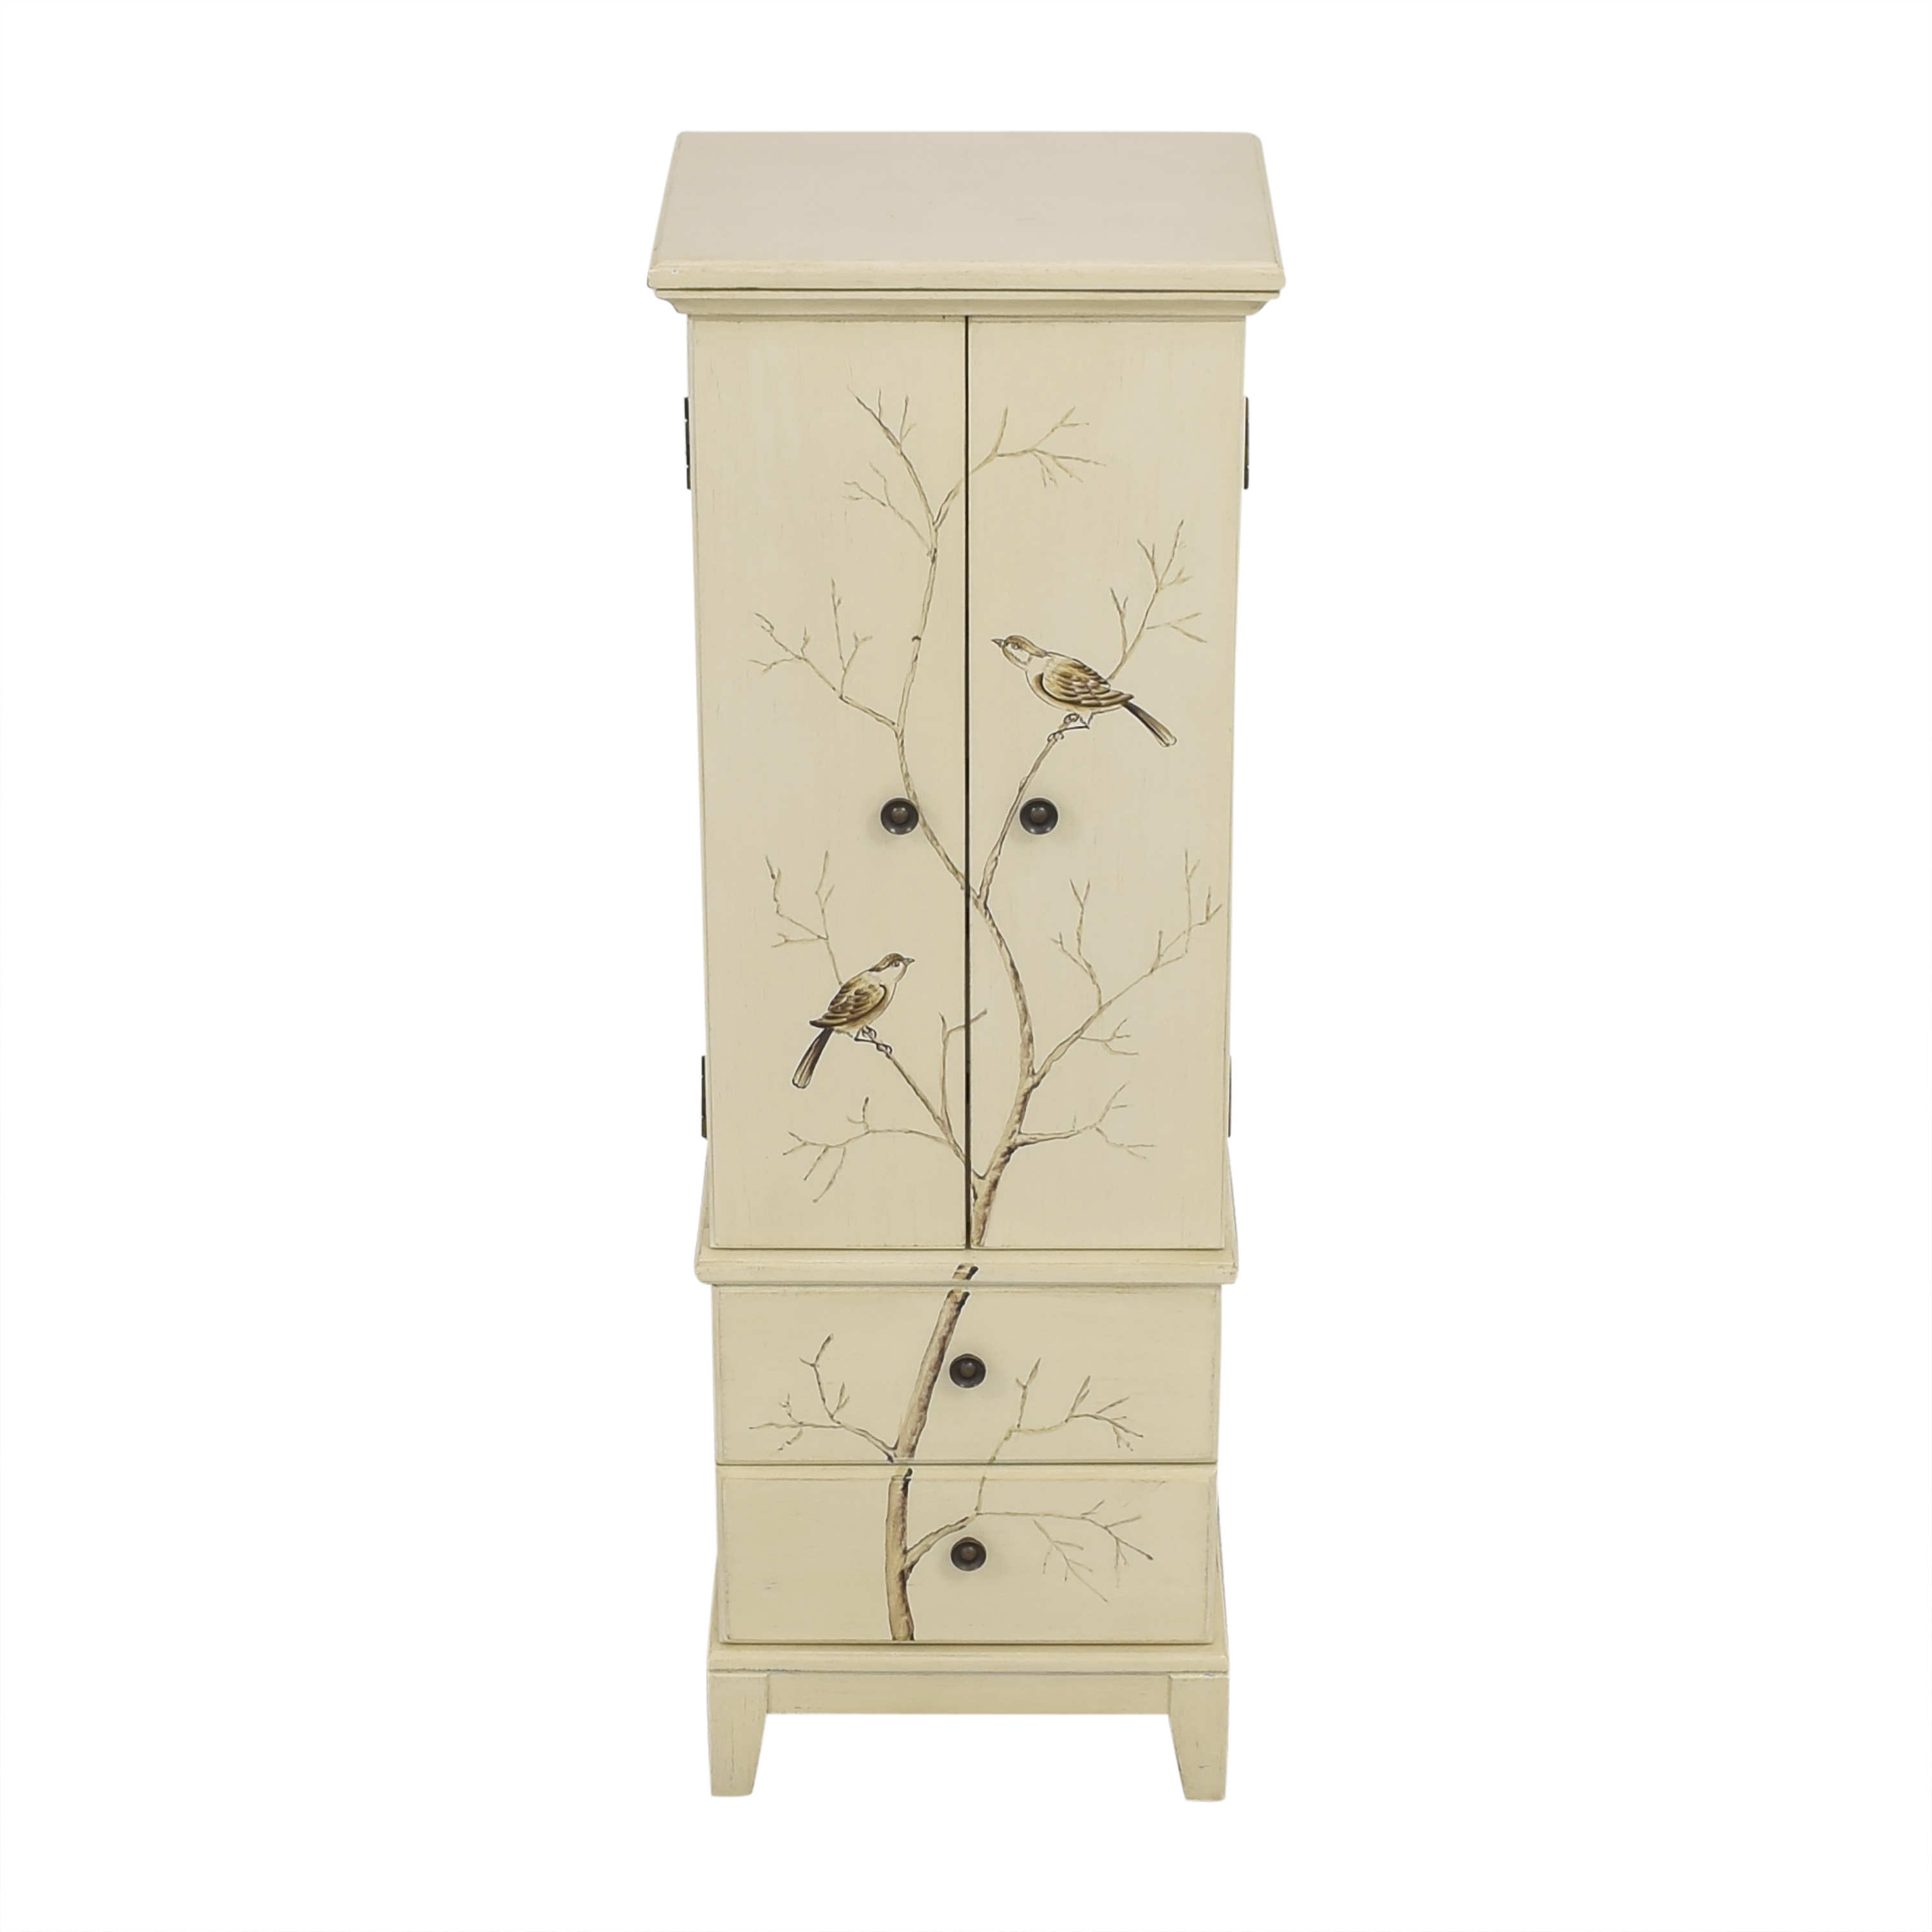 Home Decorators Collection Home Decorators Collection Chirp Jewelry Armoire Wardrobes & Armoires